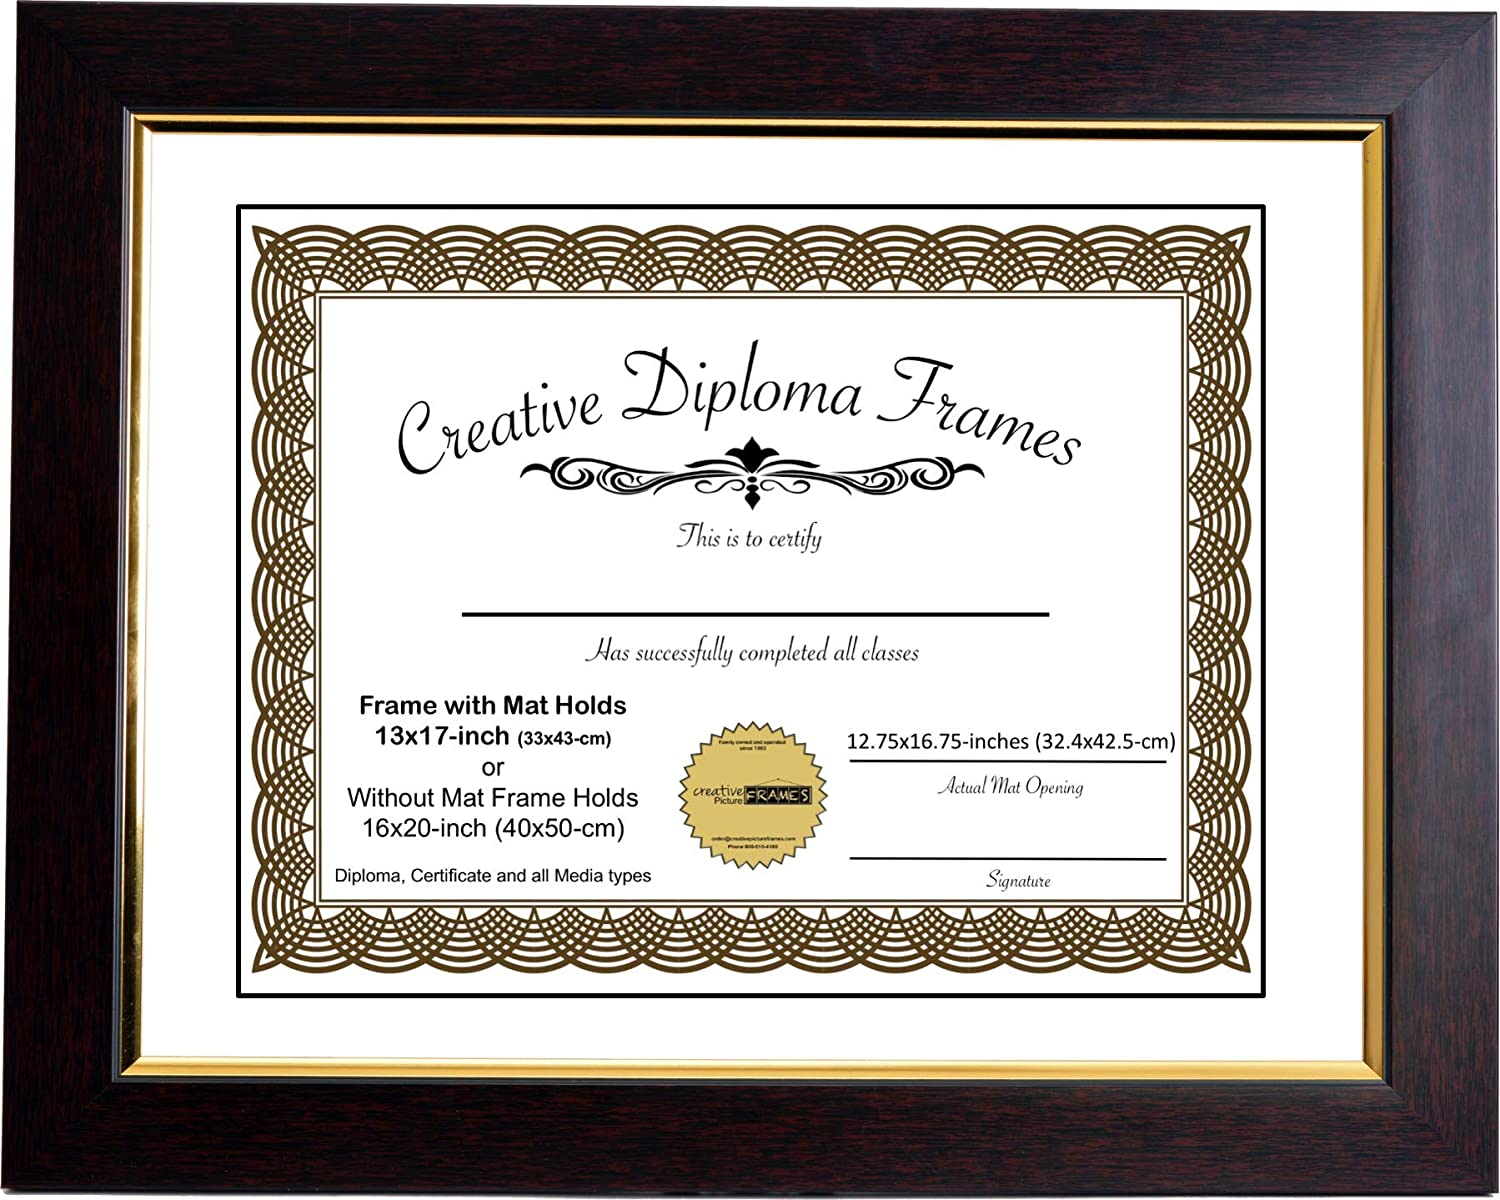 Creative Picture Frames 13x17 Eco Mahogany Diploma Frame with Gold Lip White Mat Glass and Installed Wall Hangers   Frame Holds 16x20 Media Without Mat